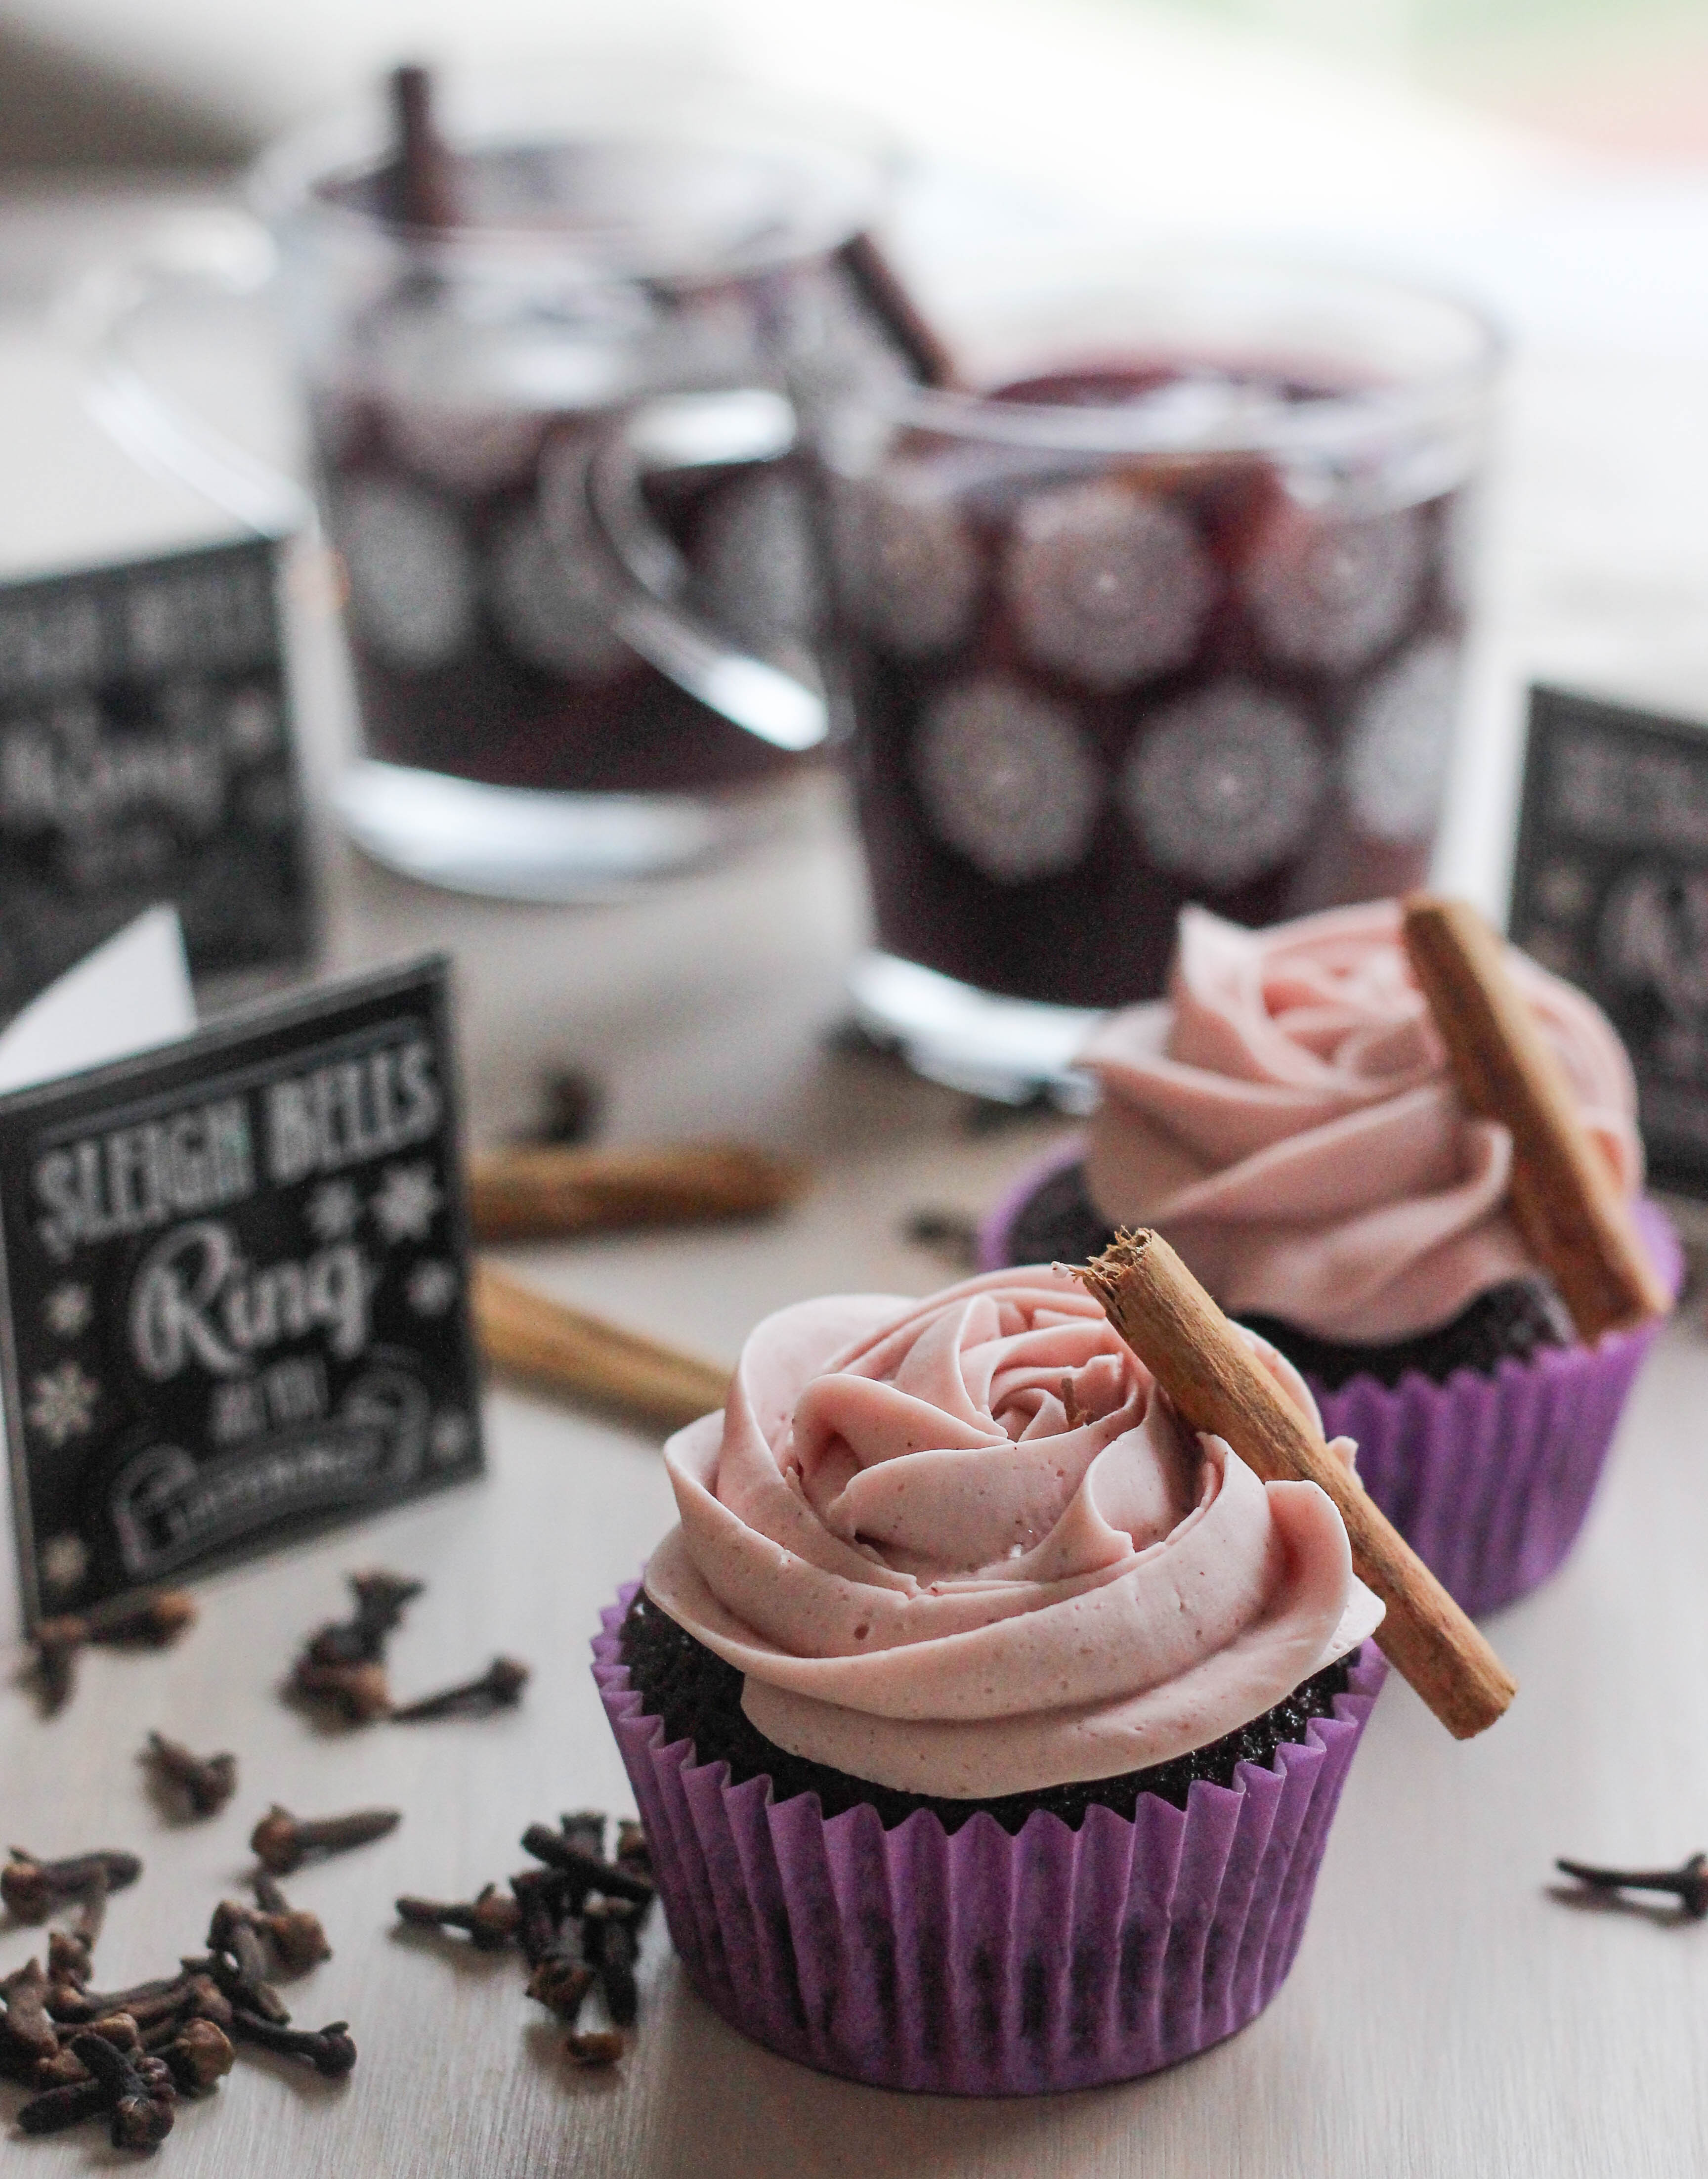 Chocolate Buttermilk Cupcakes with Gluehwein Frosting